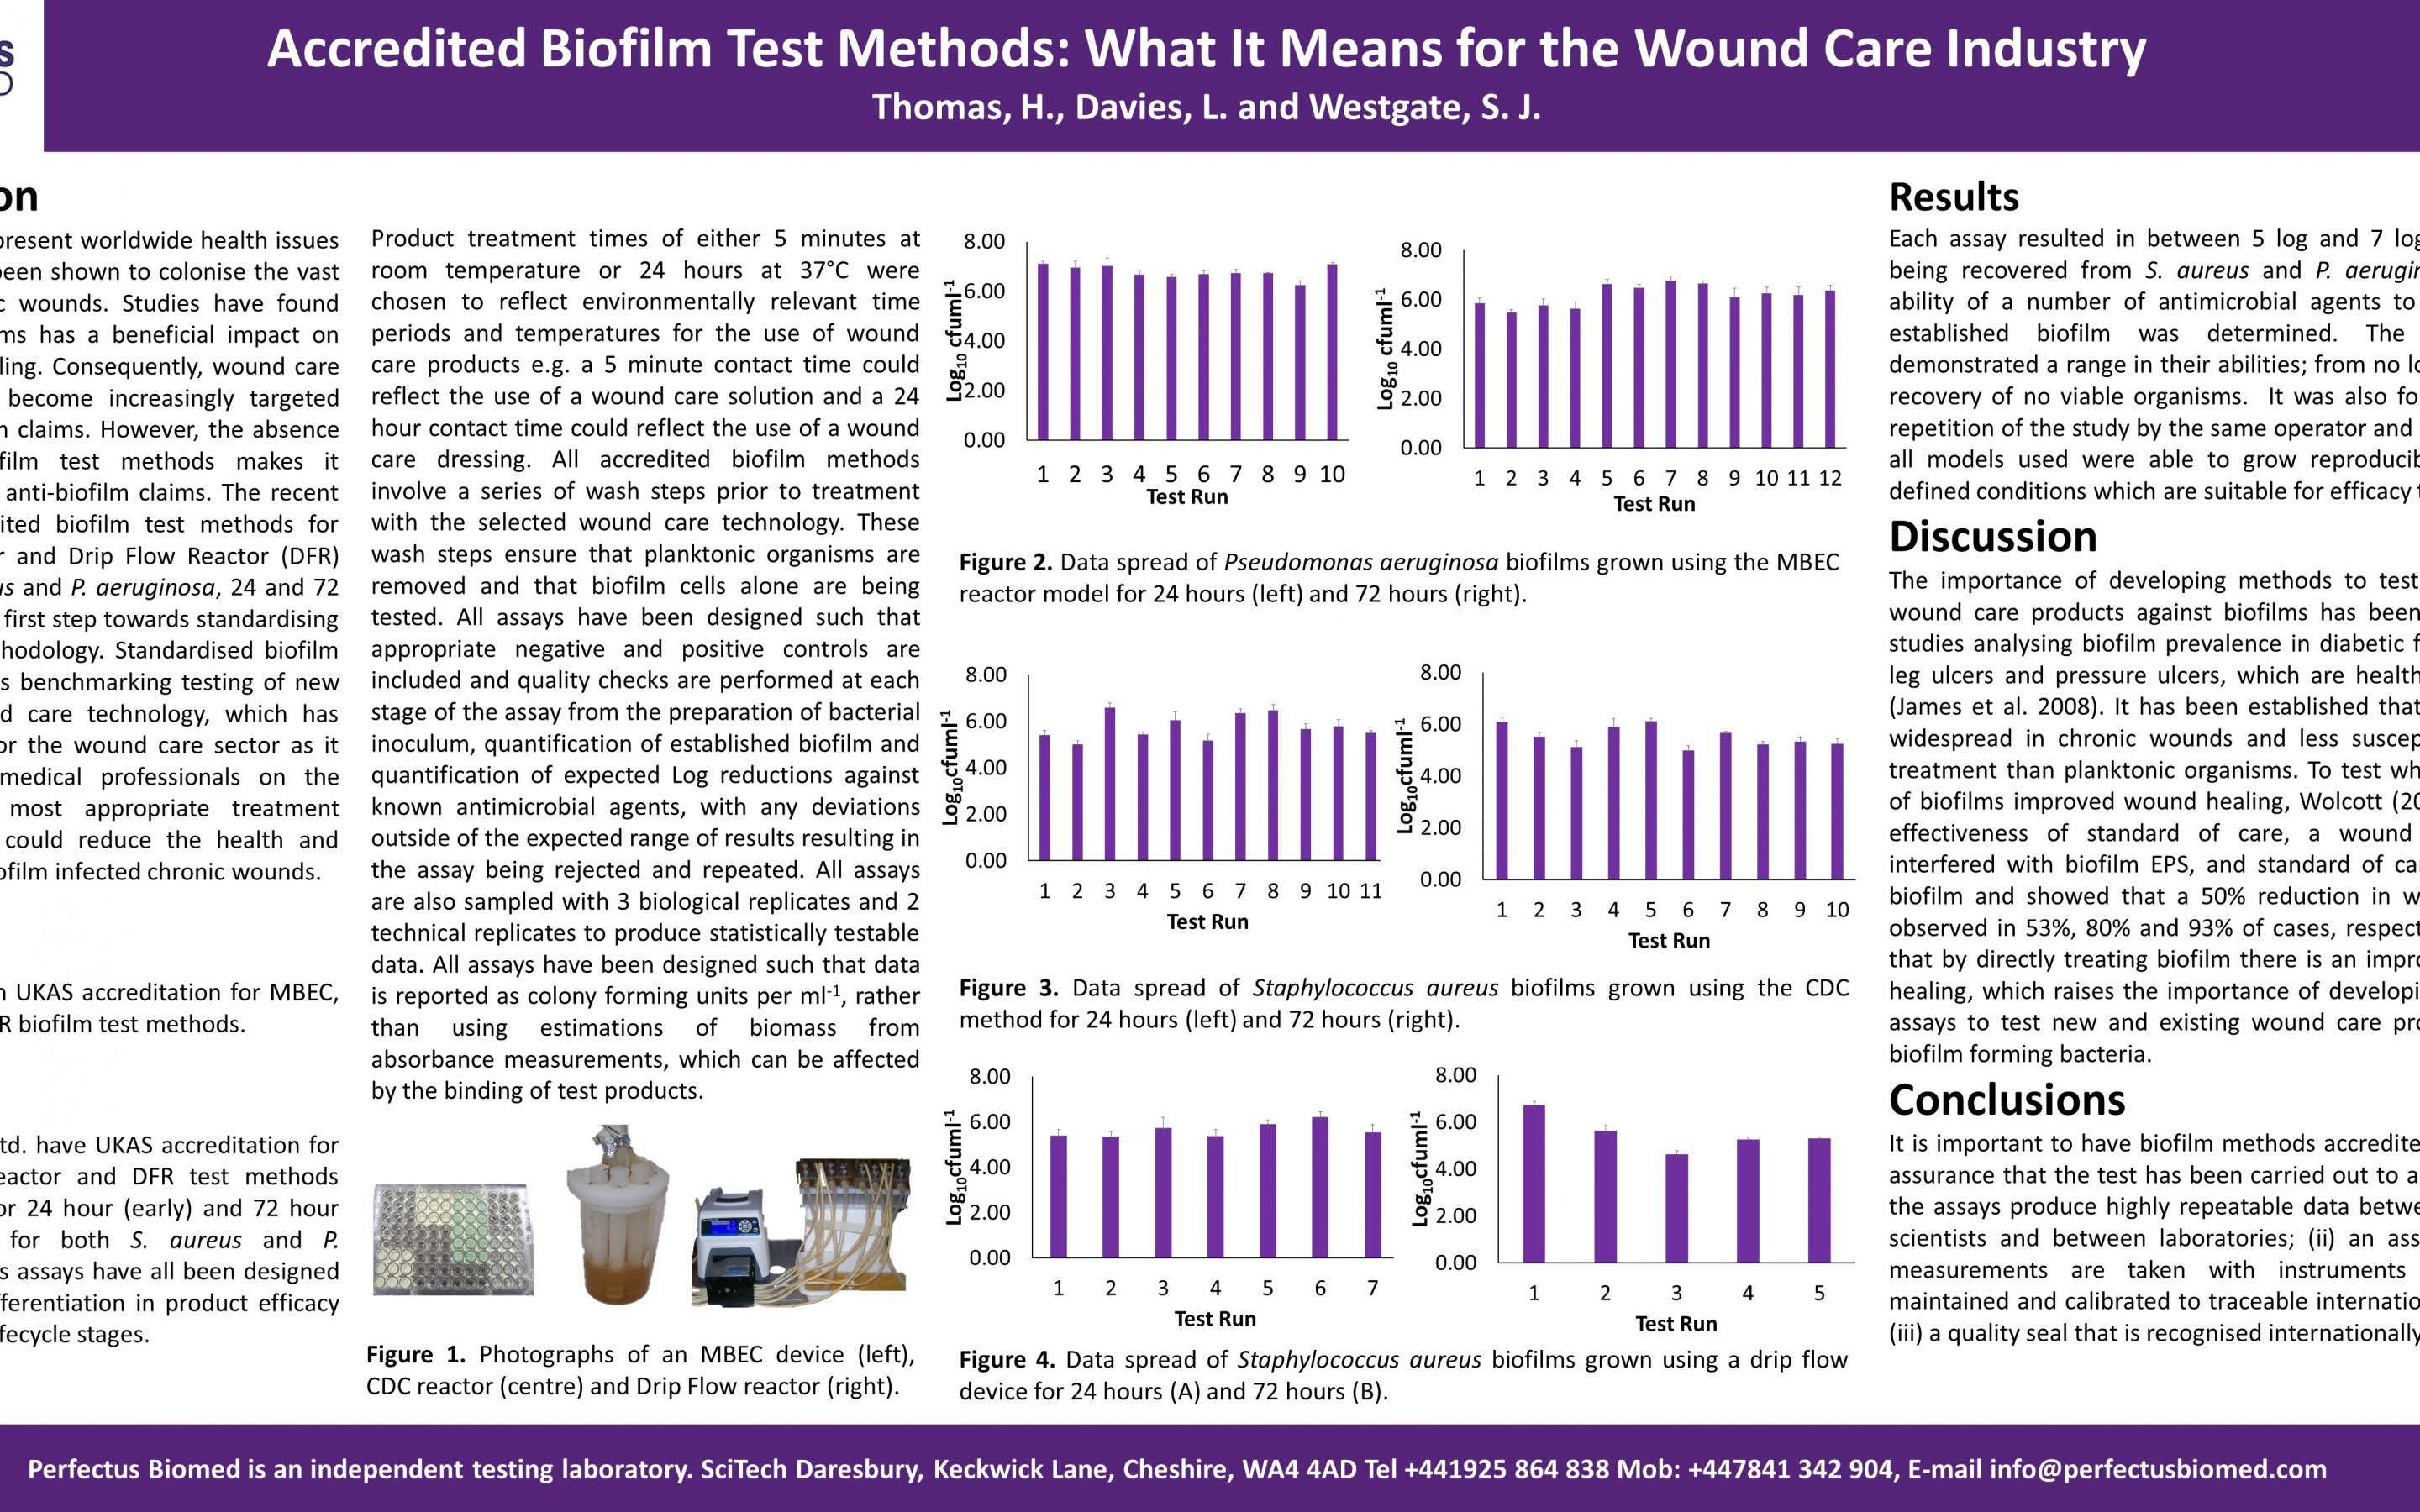 Accredited Biofilm Test Methods: What it Means for the Wound Care Industry